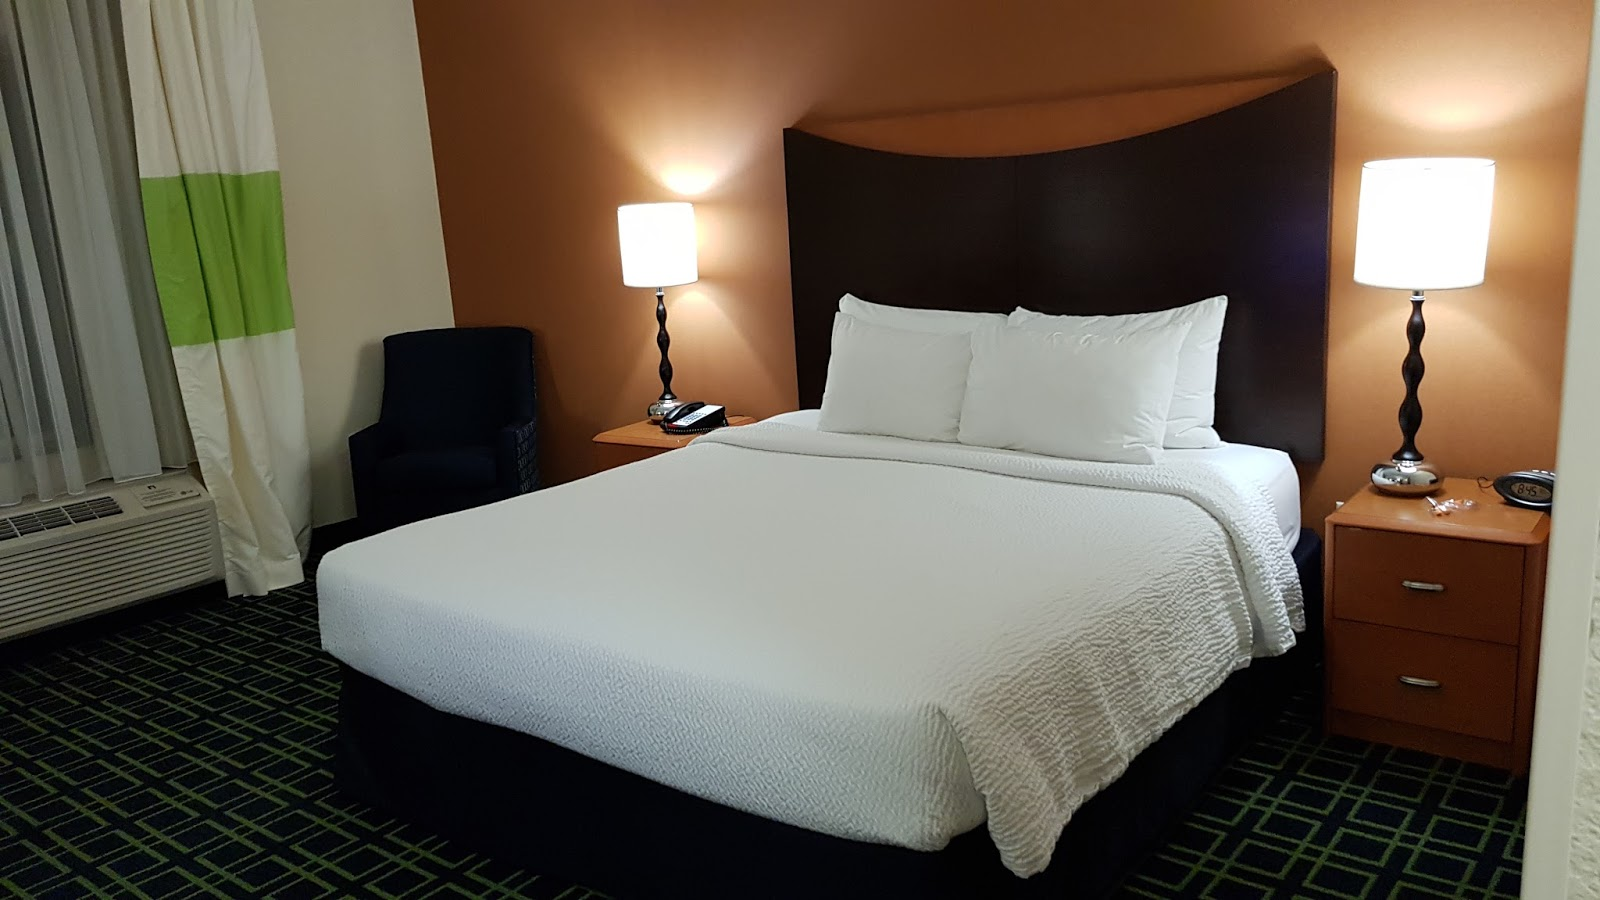 6th Stay:Fairfield Inn & Suites Selma Kingsburg